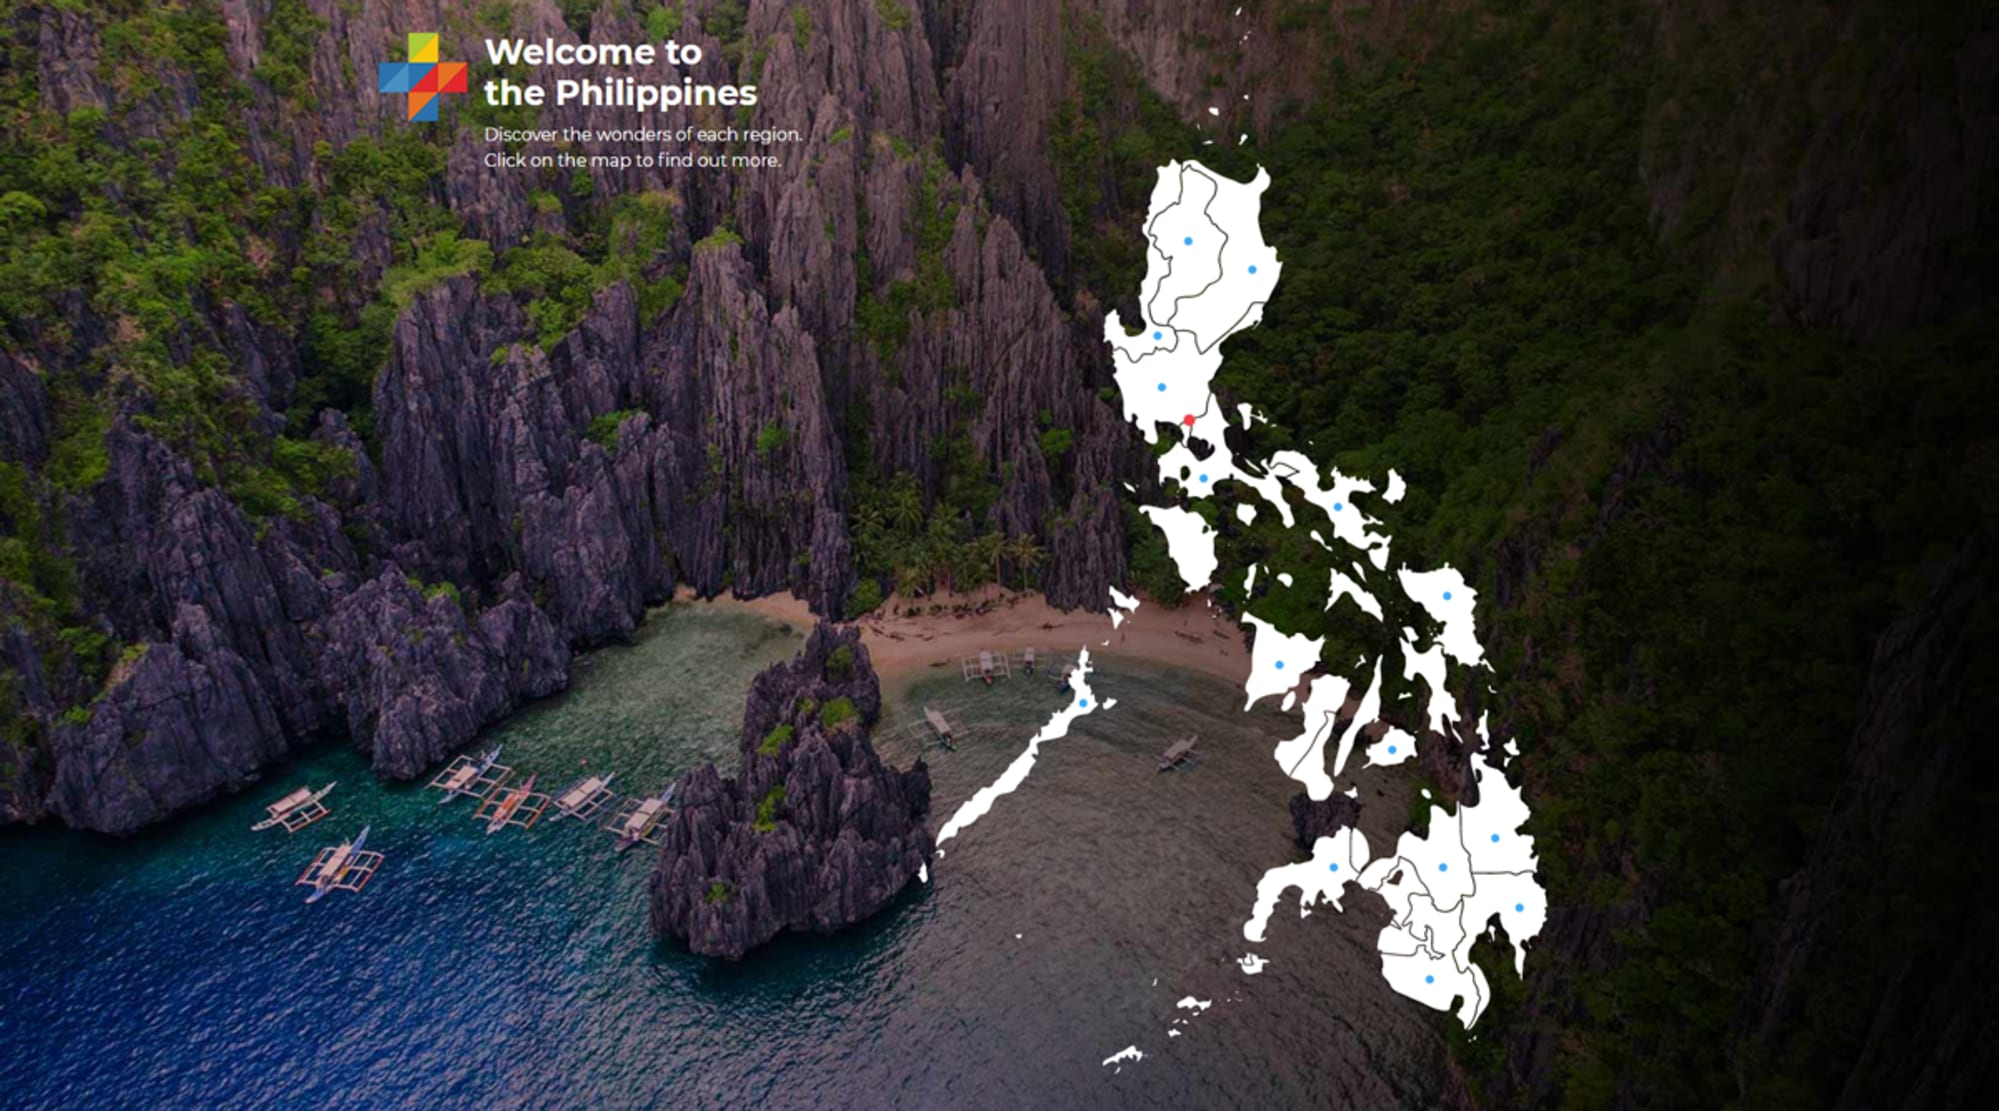 """""""More Fun Awaits"""" for all tourists, as DOT launched the global campaign"""